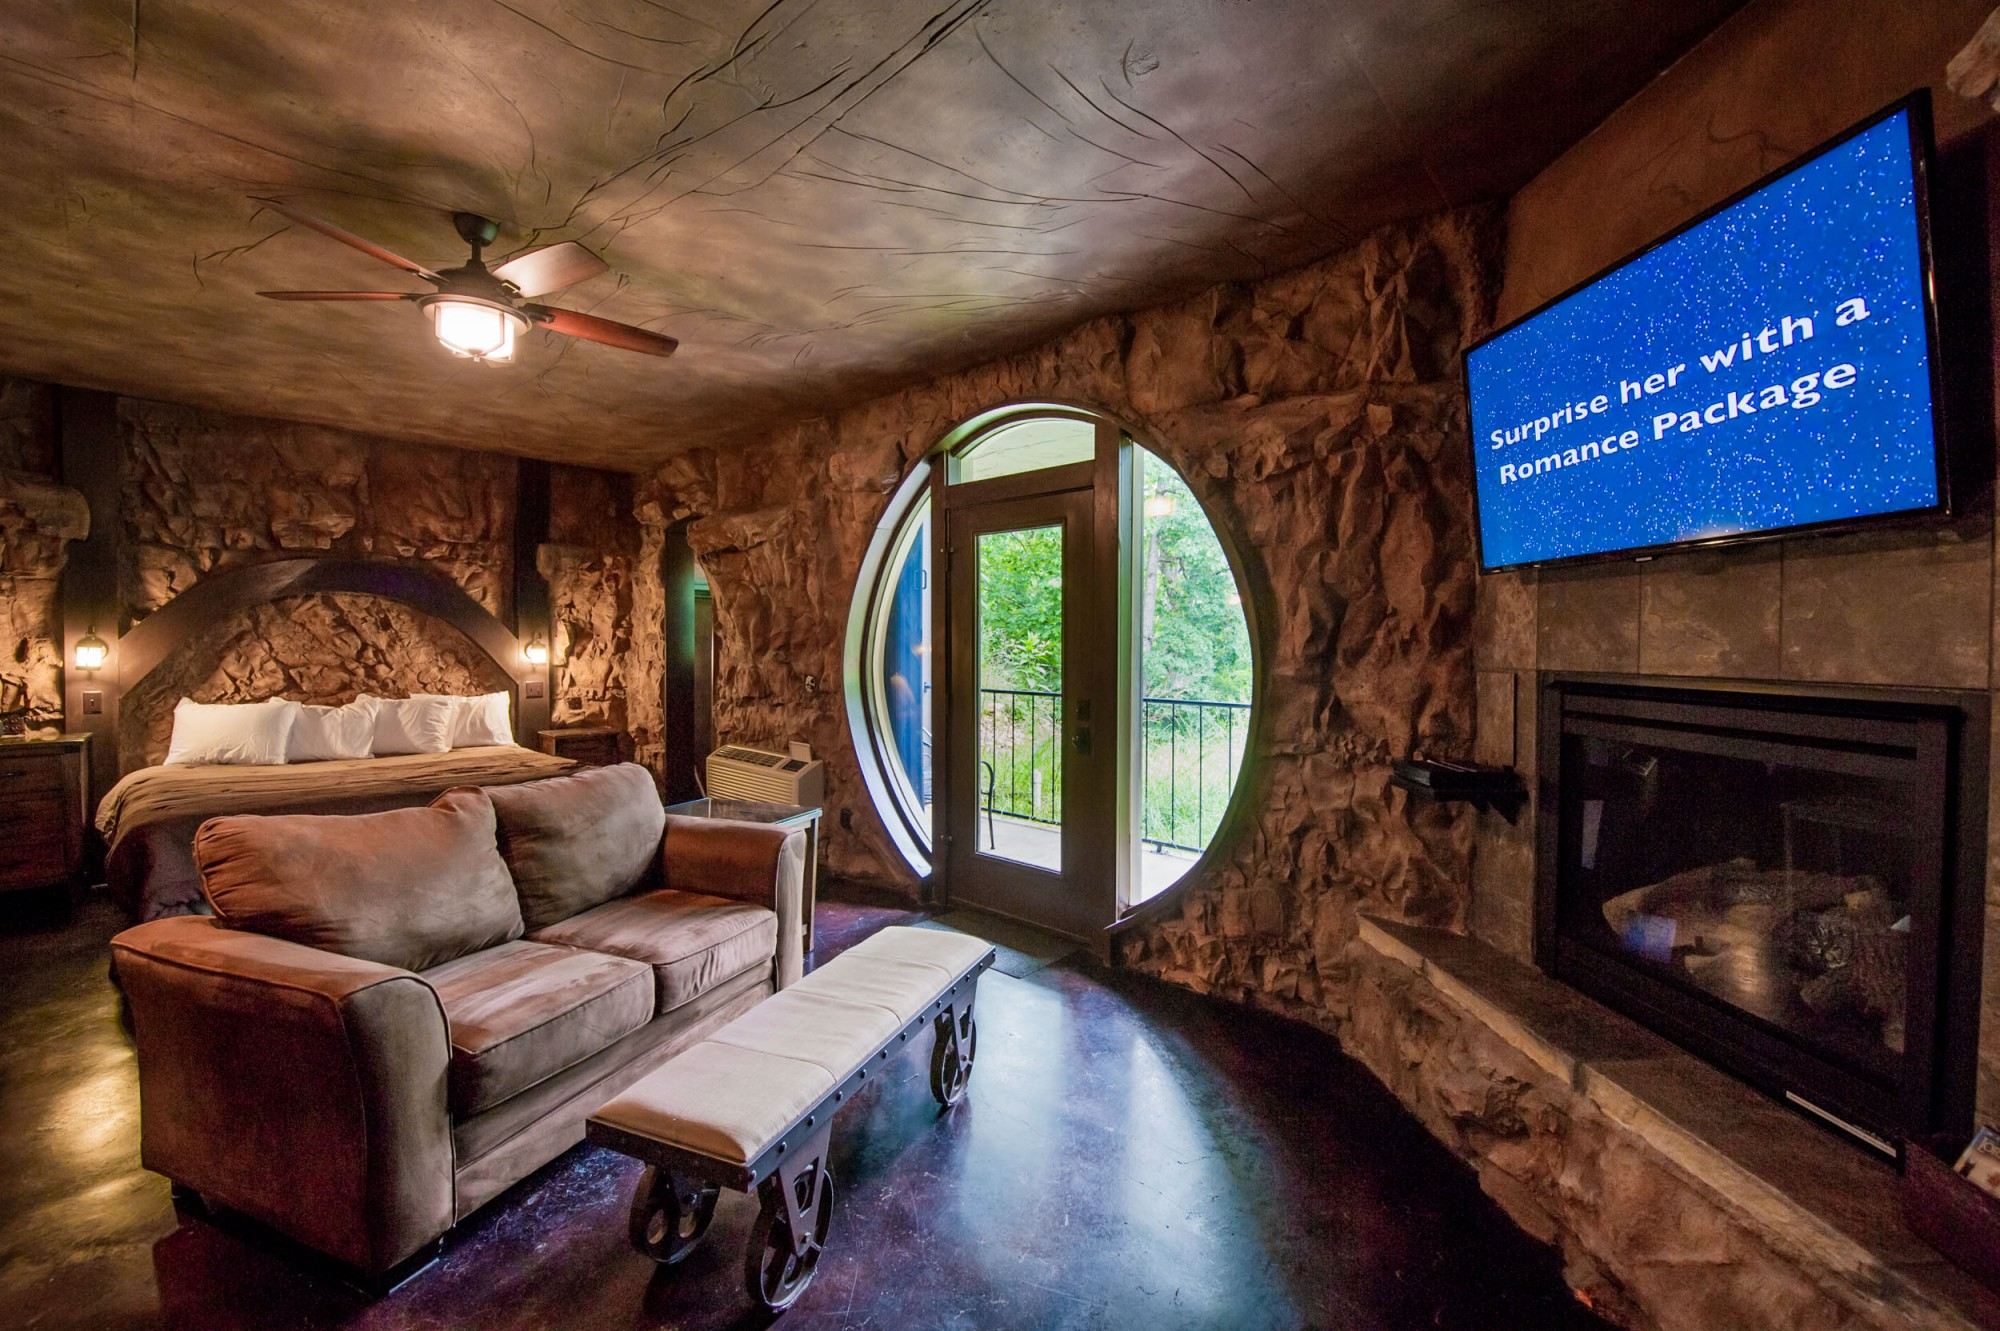 https://web.archive.org/web/20180225085304im_/https:/chambermaster.blob.core.windows.net/userfiles/UserFiles/chambers/2743/CMS/Eureka-Springs-Lodging-Places-to-stay.jpg